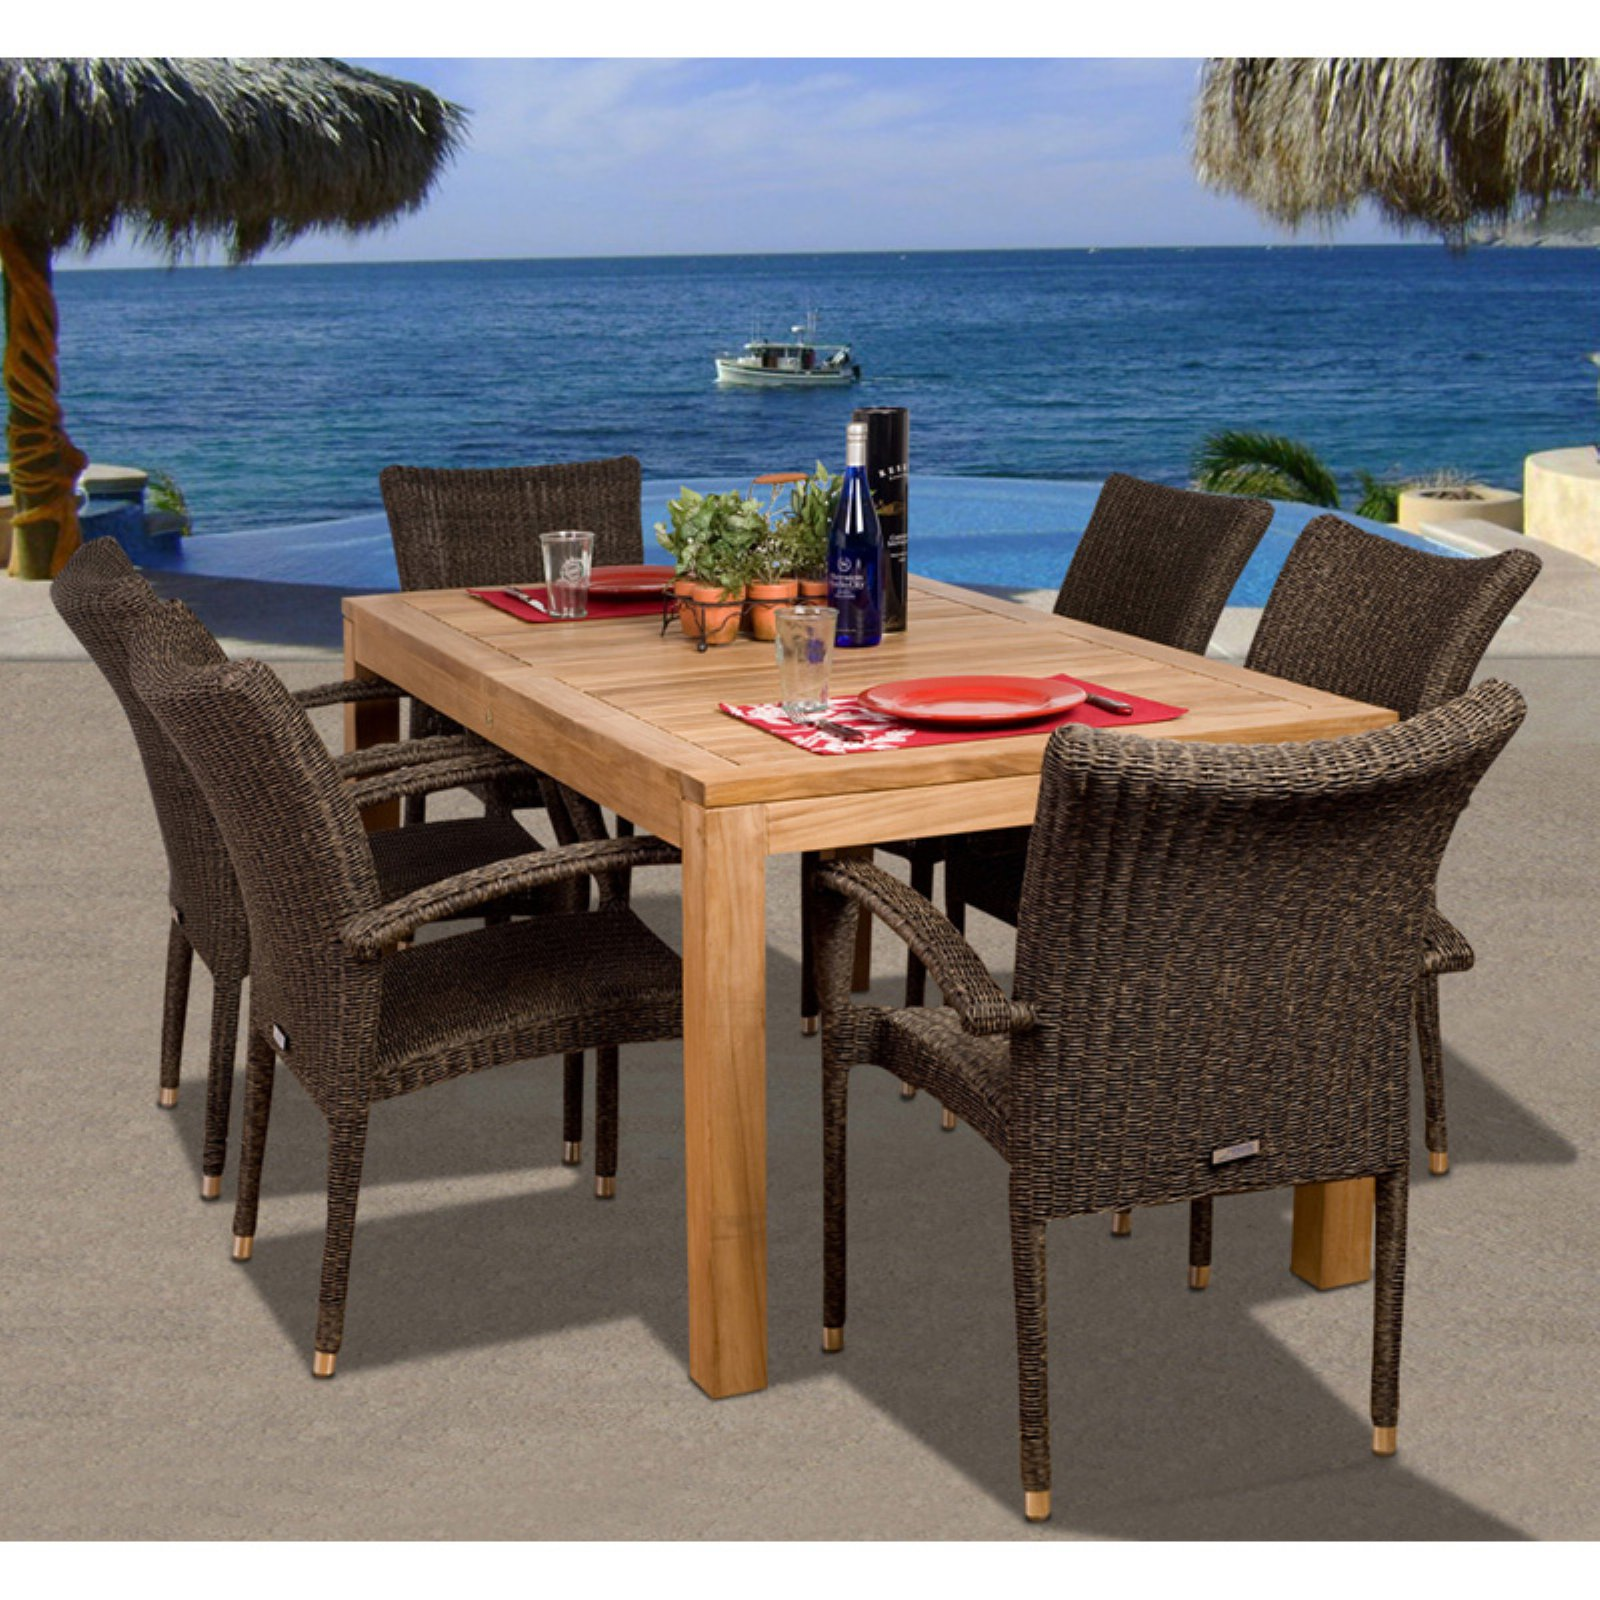 Amazonia Brussels Teak Dining Set - Seats 6